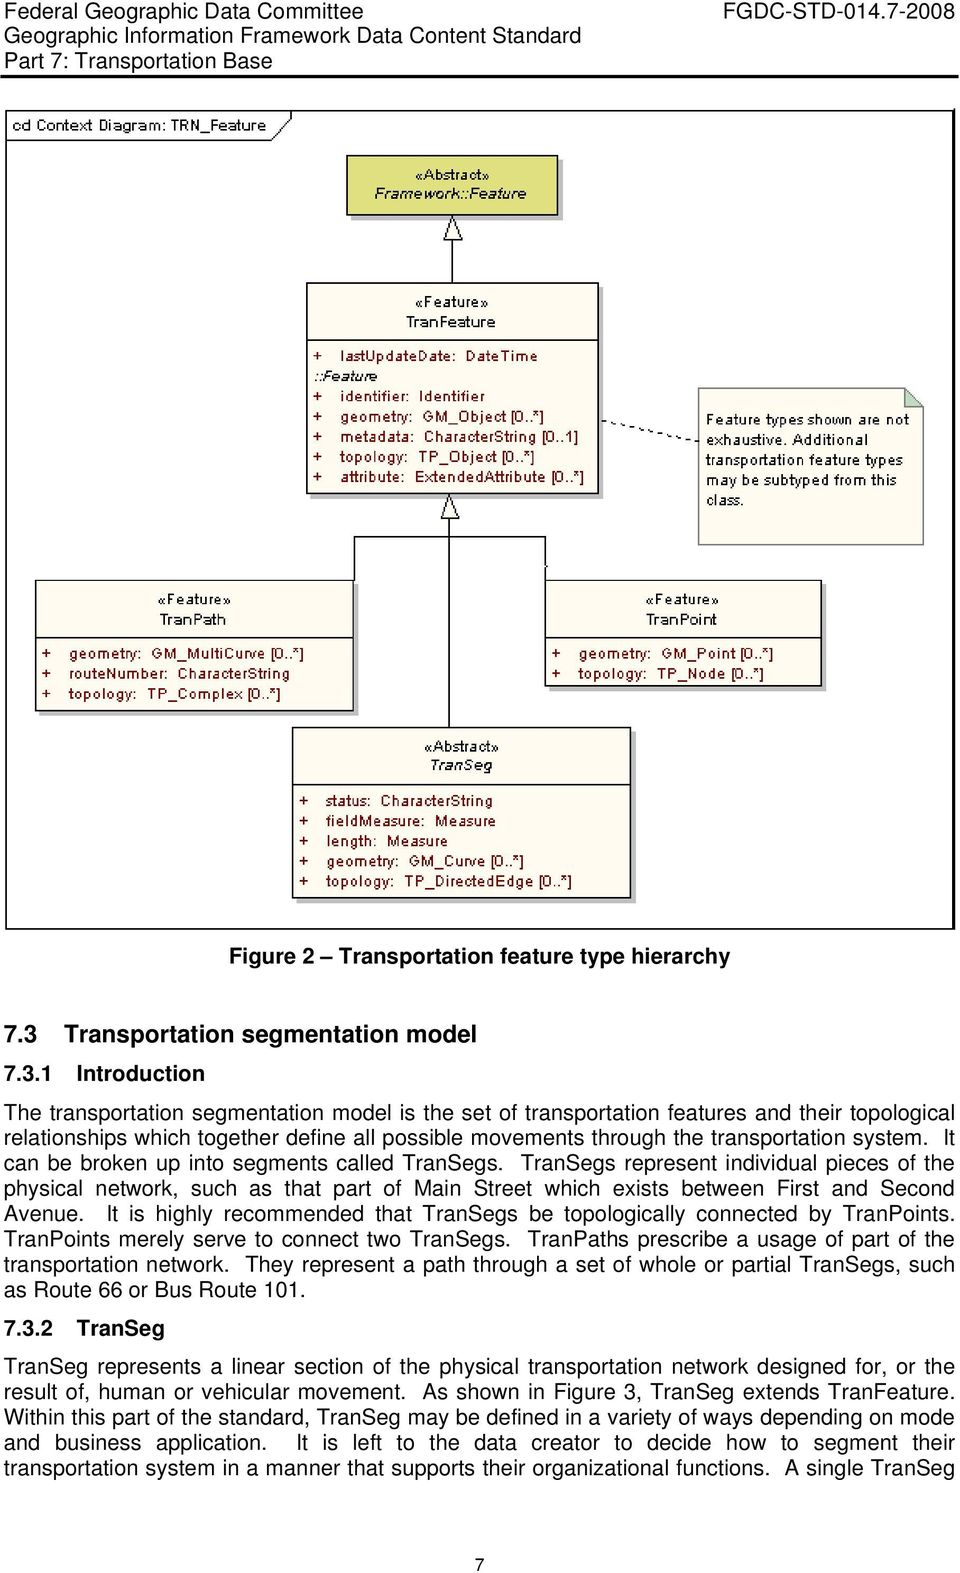 1 Introduction The transportation segmentation model is the set of transportation features and their topological relationships which together define all possible movements through the transportation